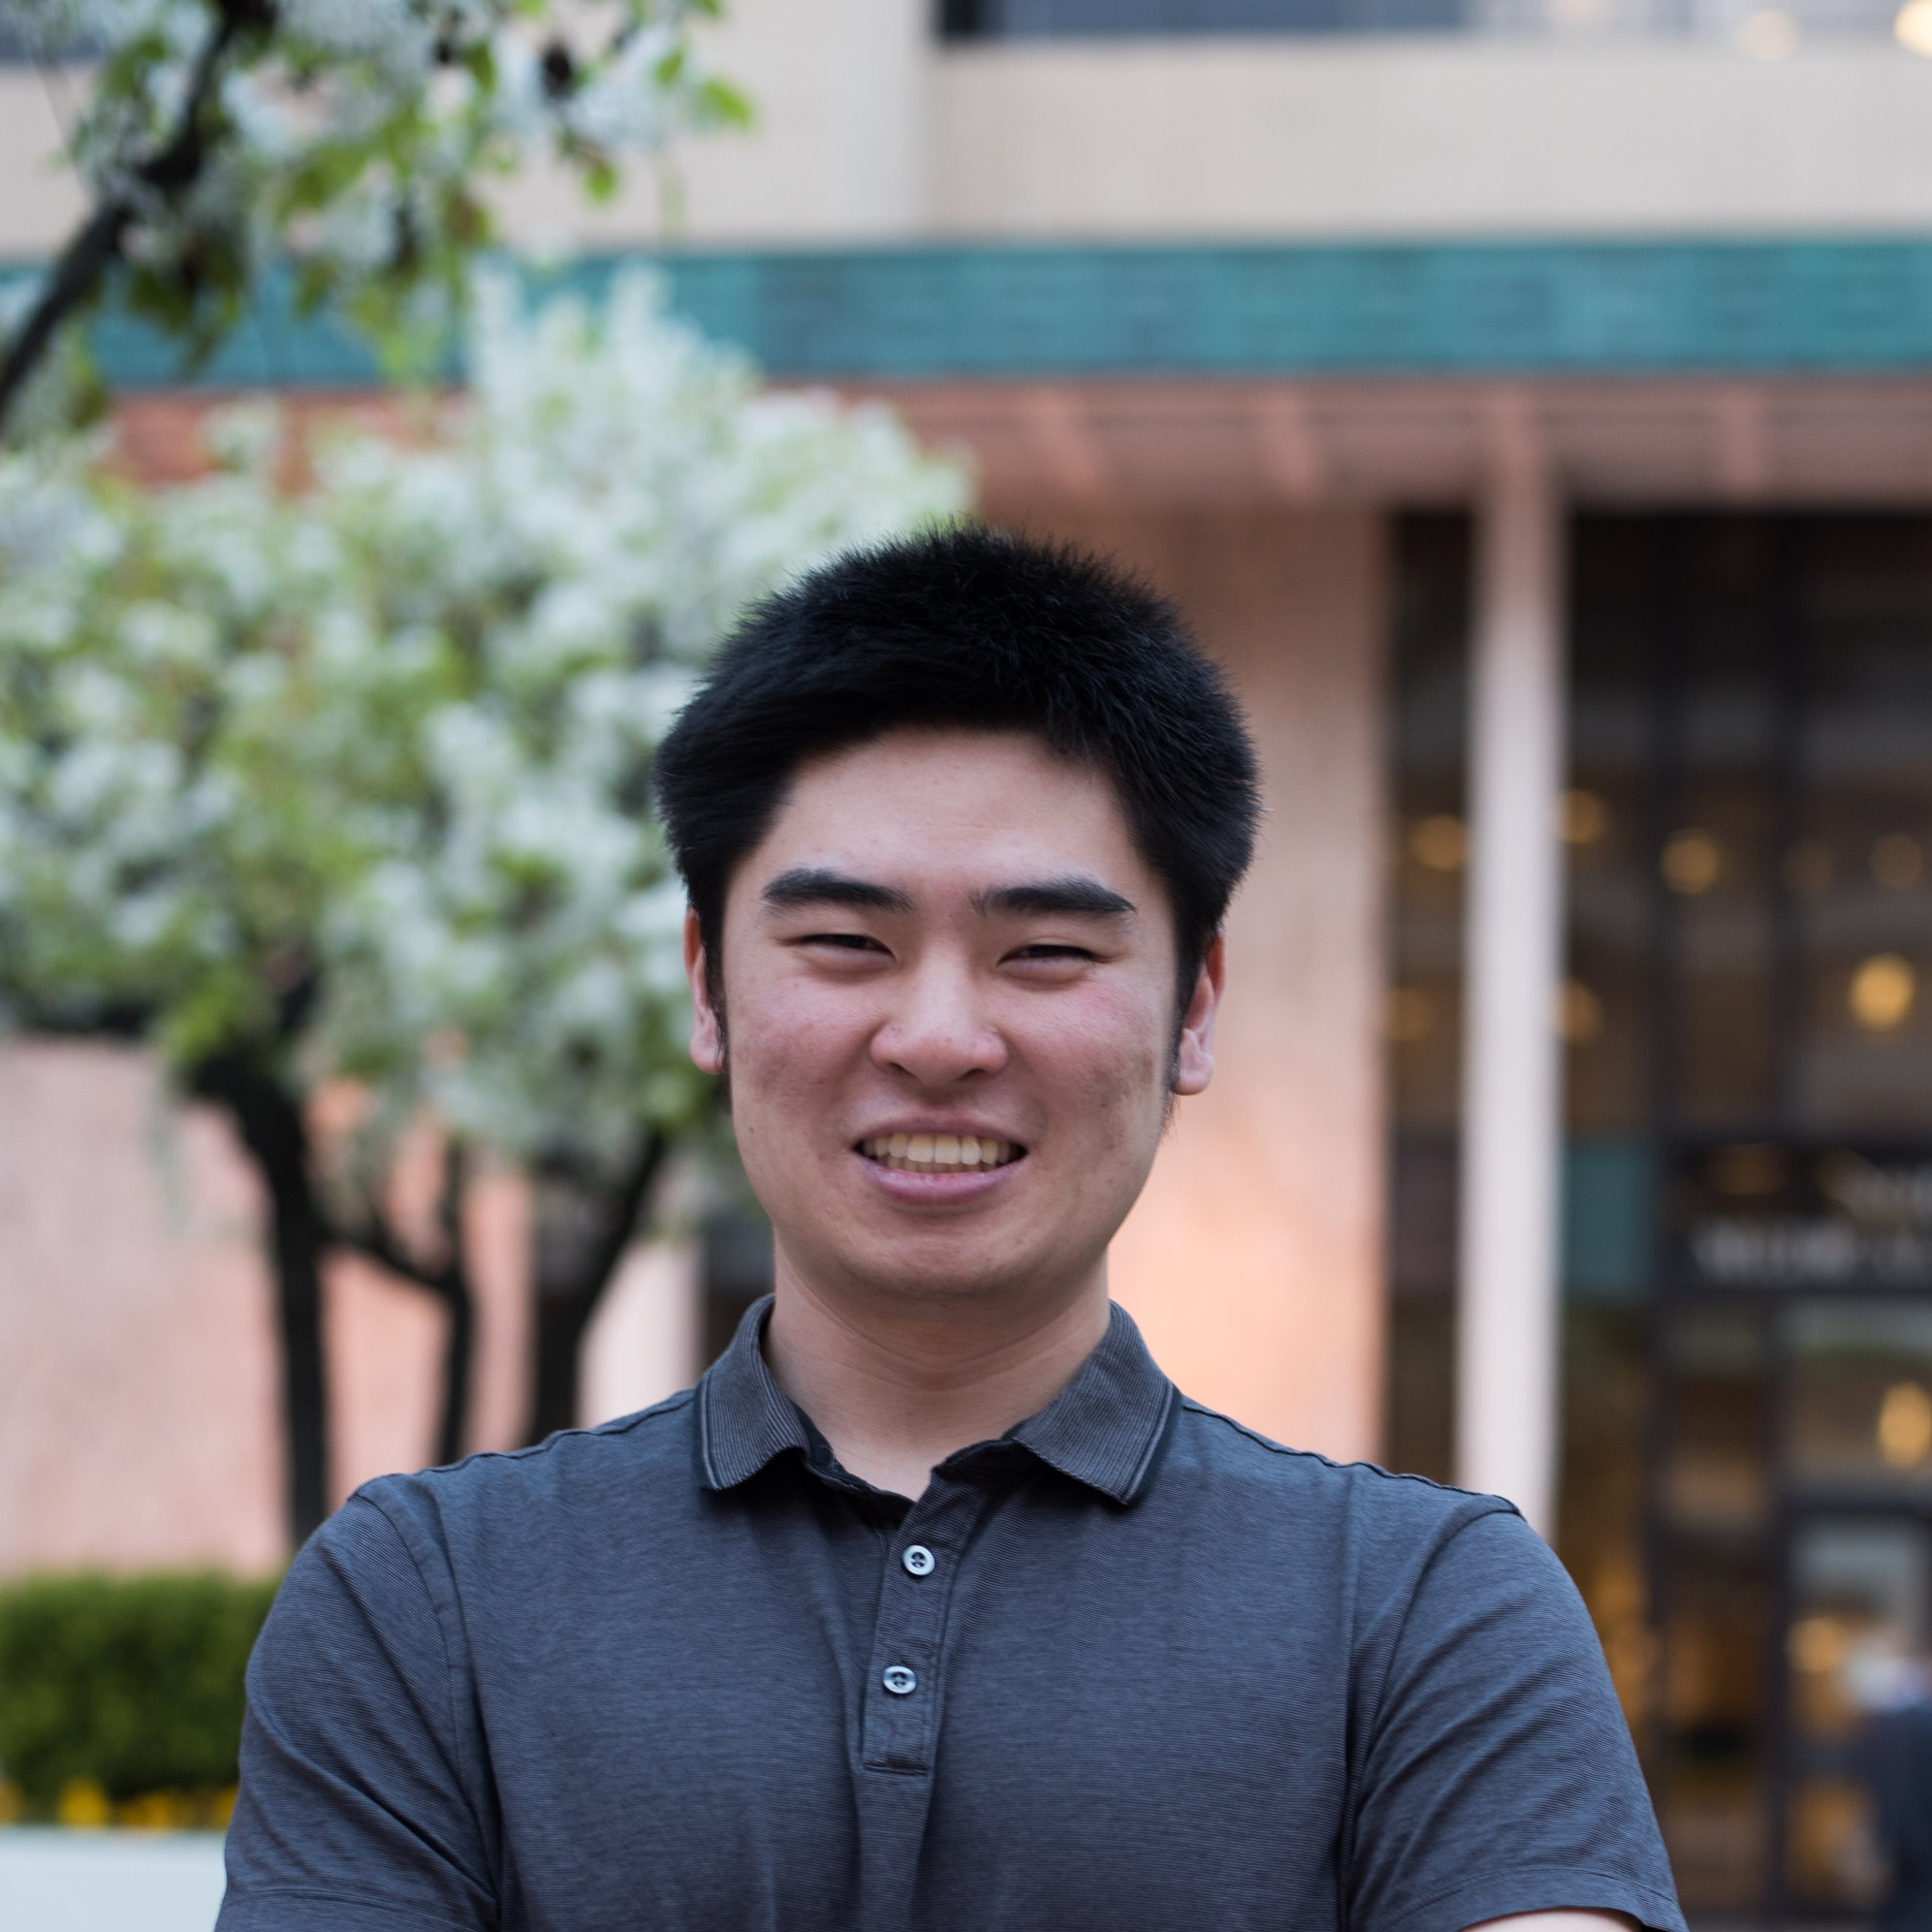 Albert Lam is a 3rd year PhD student in the Pharmacology and Pharmaceutical Sciences program. He graduated from UCLA with a B.S. in Microbiology, Immunology, and Molecular Genetics (MIMG) in 2013. After a year of studying metabolic engineering, he joined USC through the Programs in Biomedical and Biological Sciences in 2014. Albert joined the lab of Yong (Tiger) Zhang in 2015 and is studying the structure-activity relationship of enzymes that catalyze post-translational modifications and their substrates.